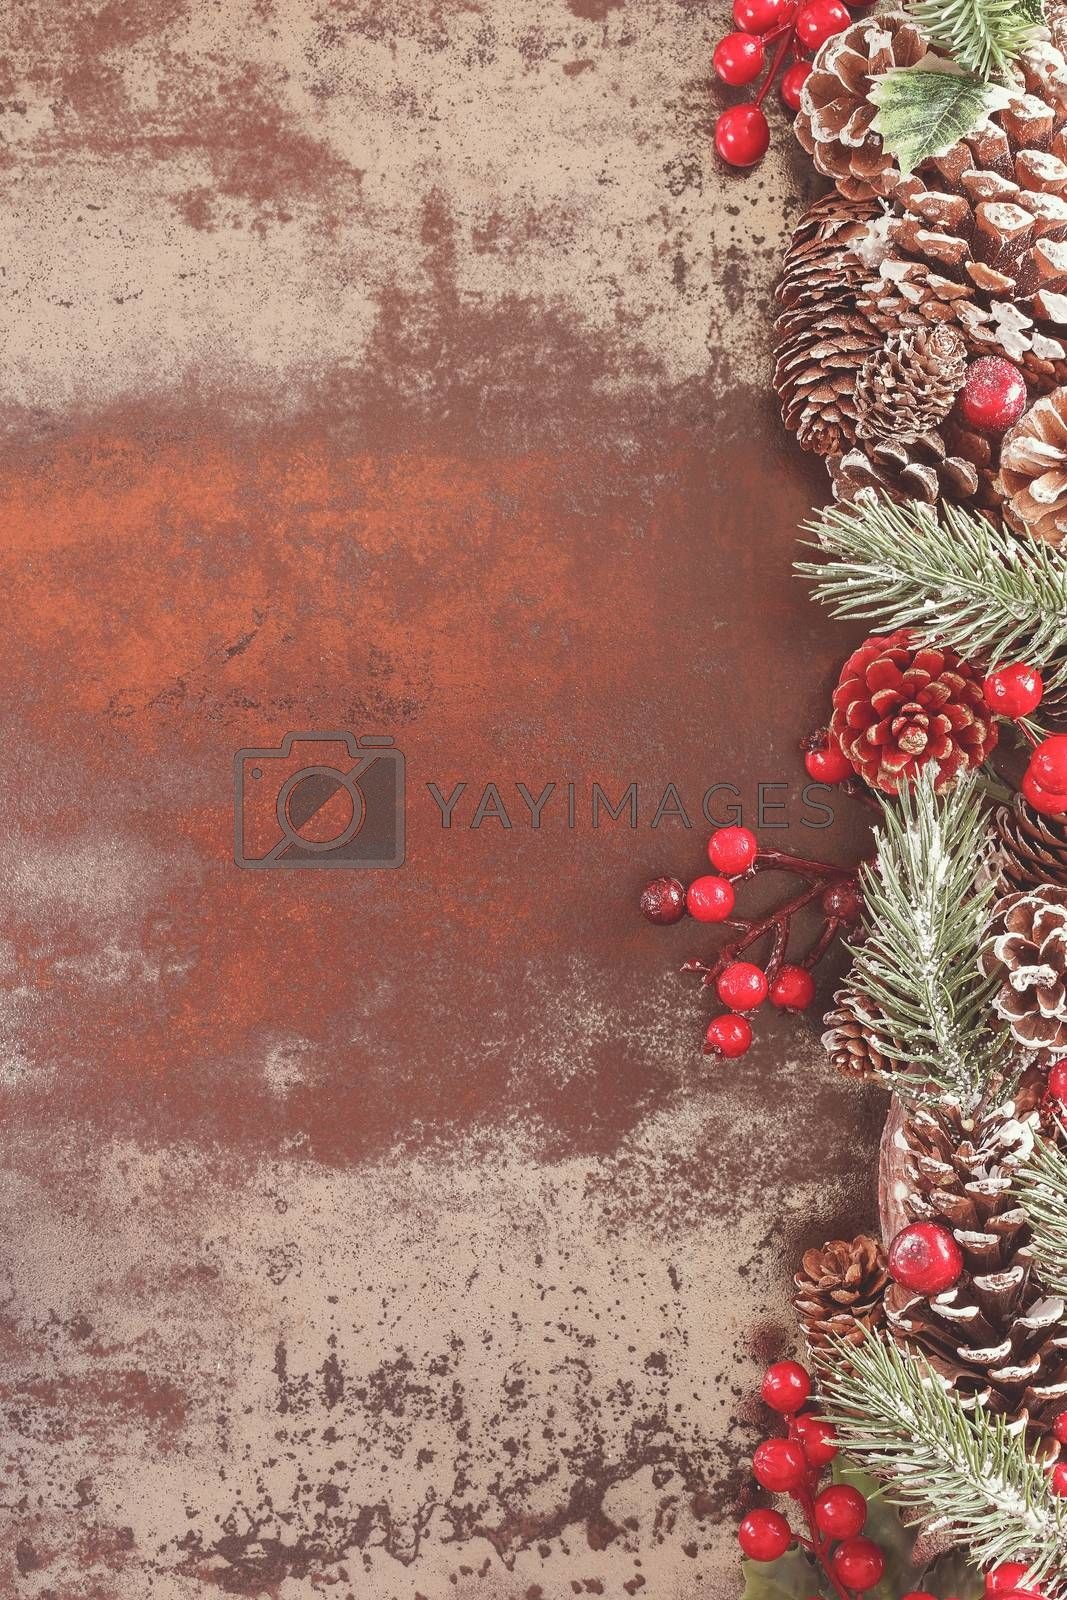 Holiday frame with pine cones by Slast20